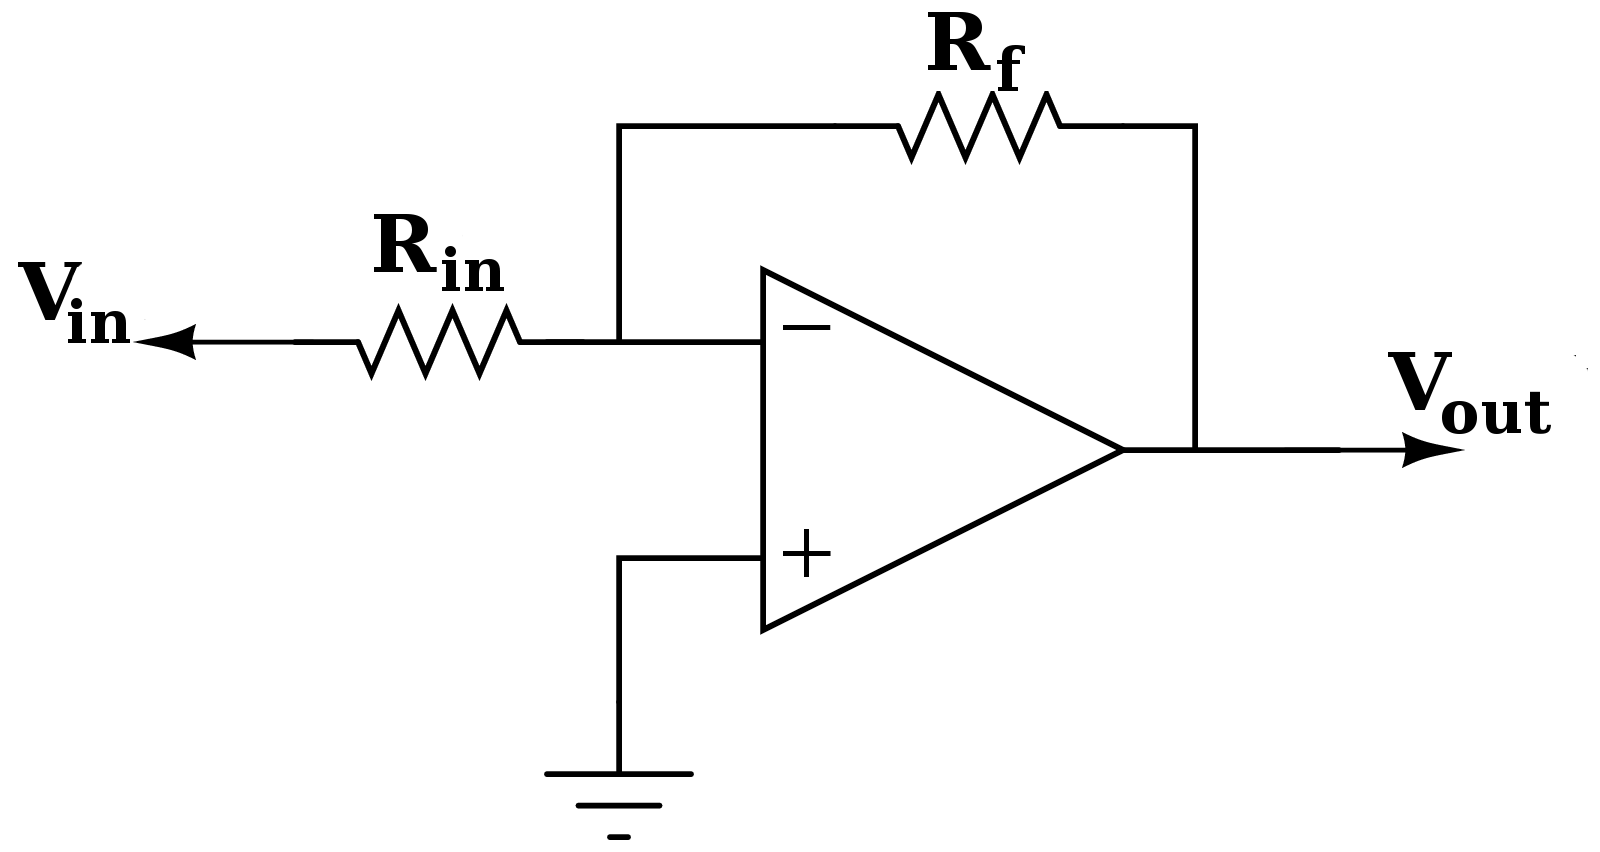 Current To Voltage Converter Op Amp Application Inverting Amplifier Configuration Of An Becomes A Transimpedence When Rin Is 0 Ohms